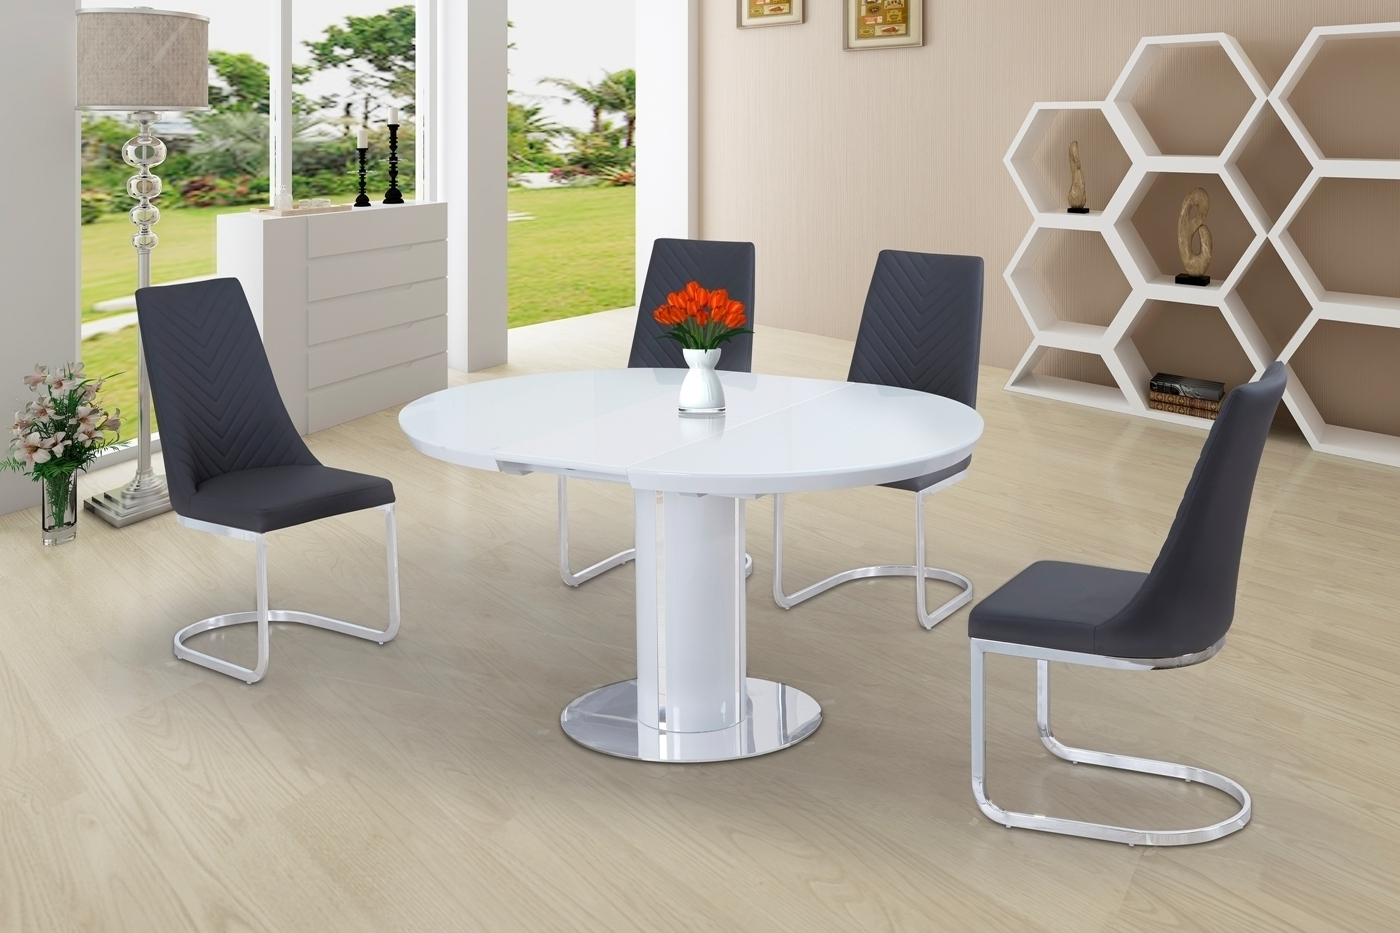 Round White Glass High Gloss Dining Table And 6 Grey Chairs Intended For Trendy Gloss Dining Sets (View 23 of 25)